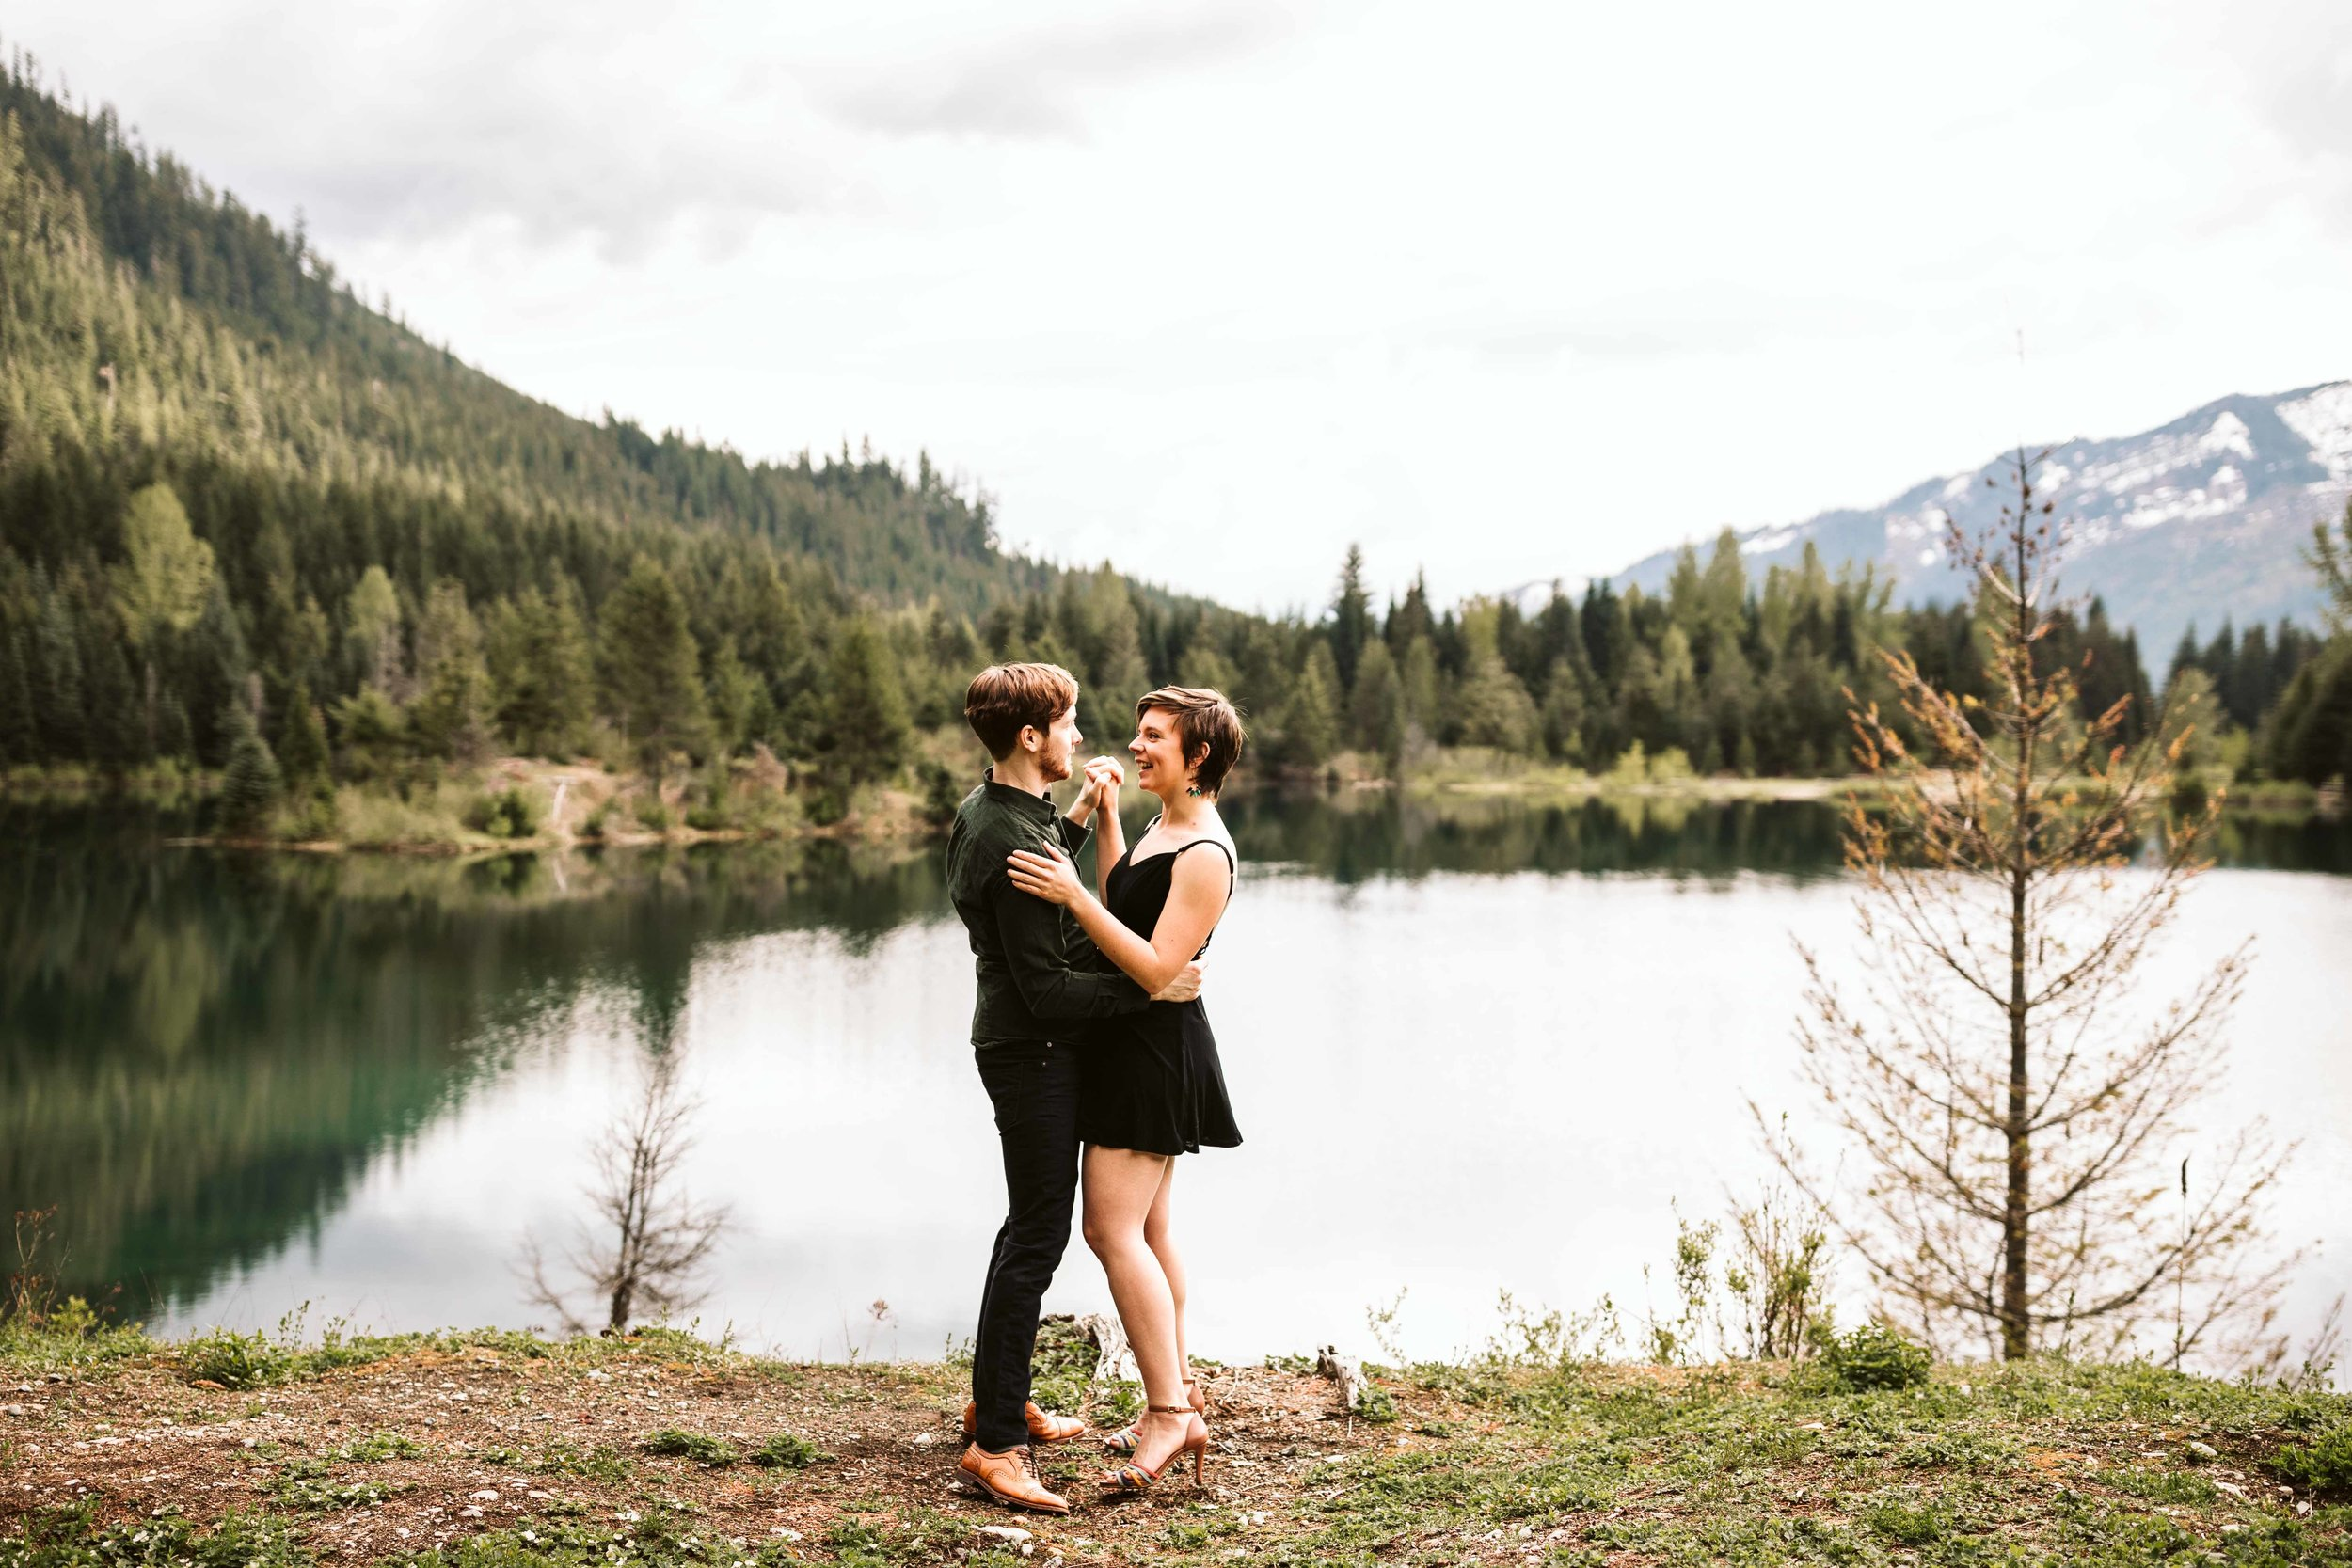 gold-creek-pond-trail-engagement-33.jpg